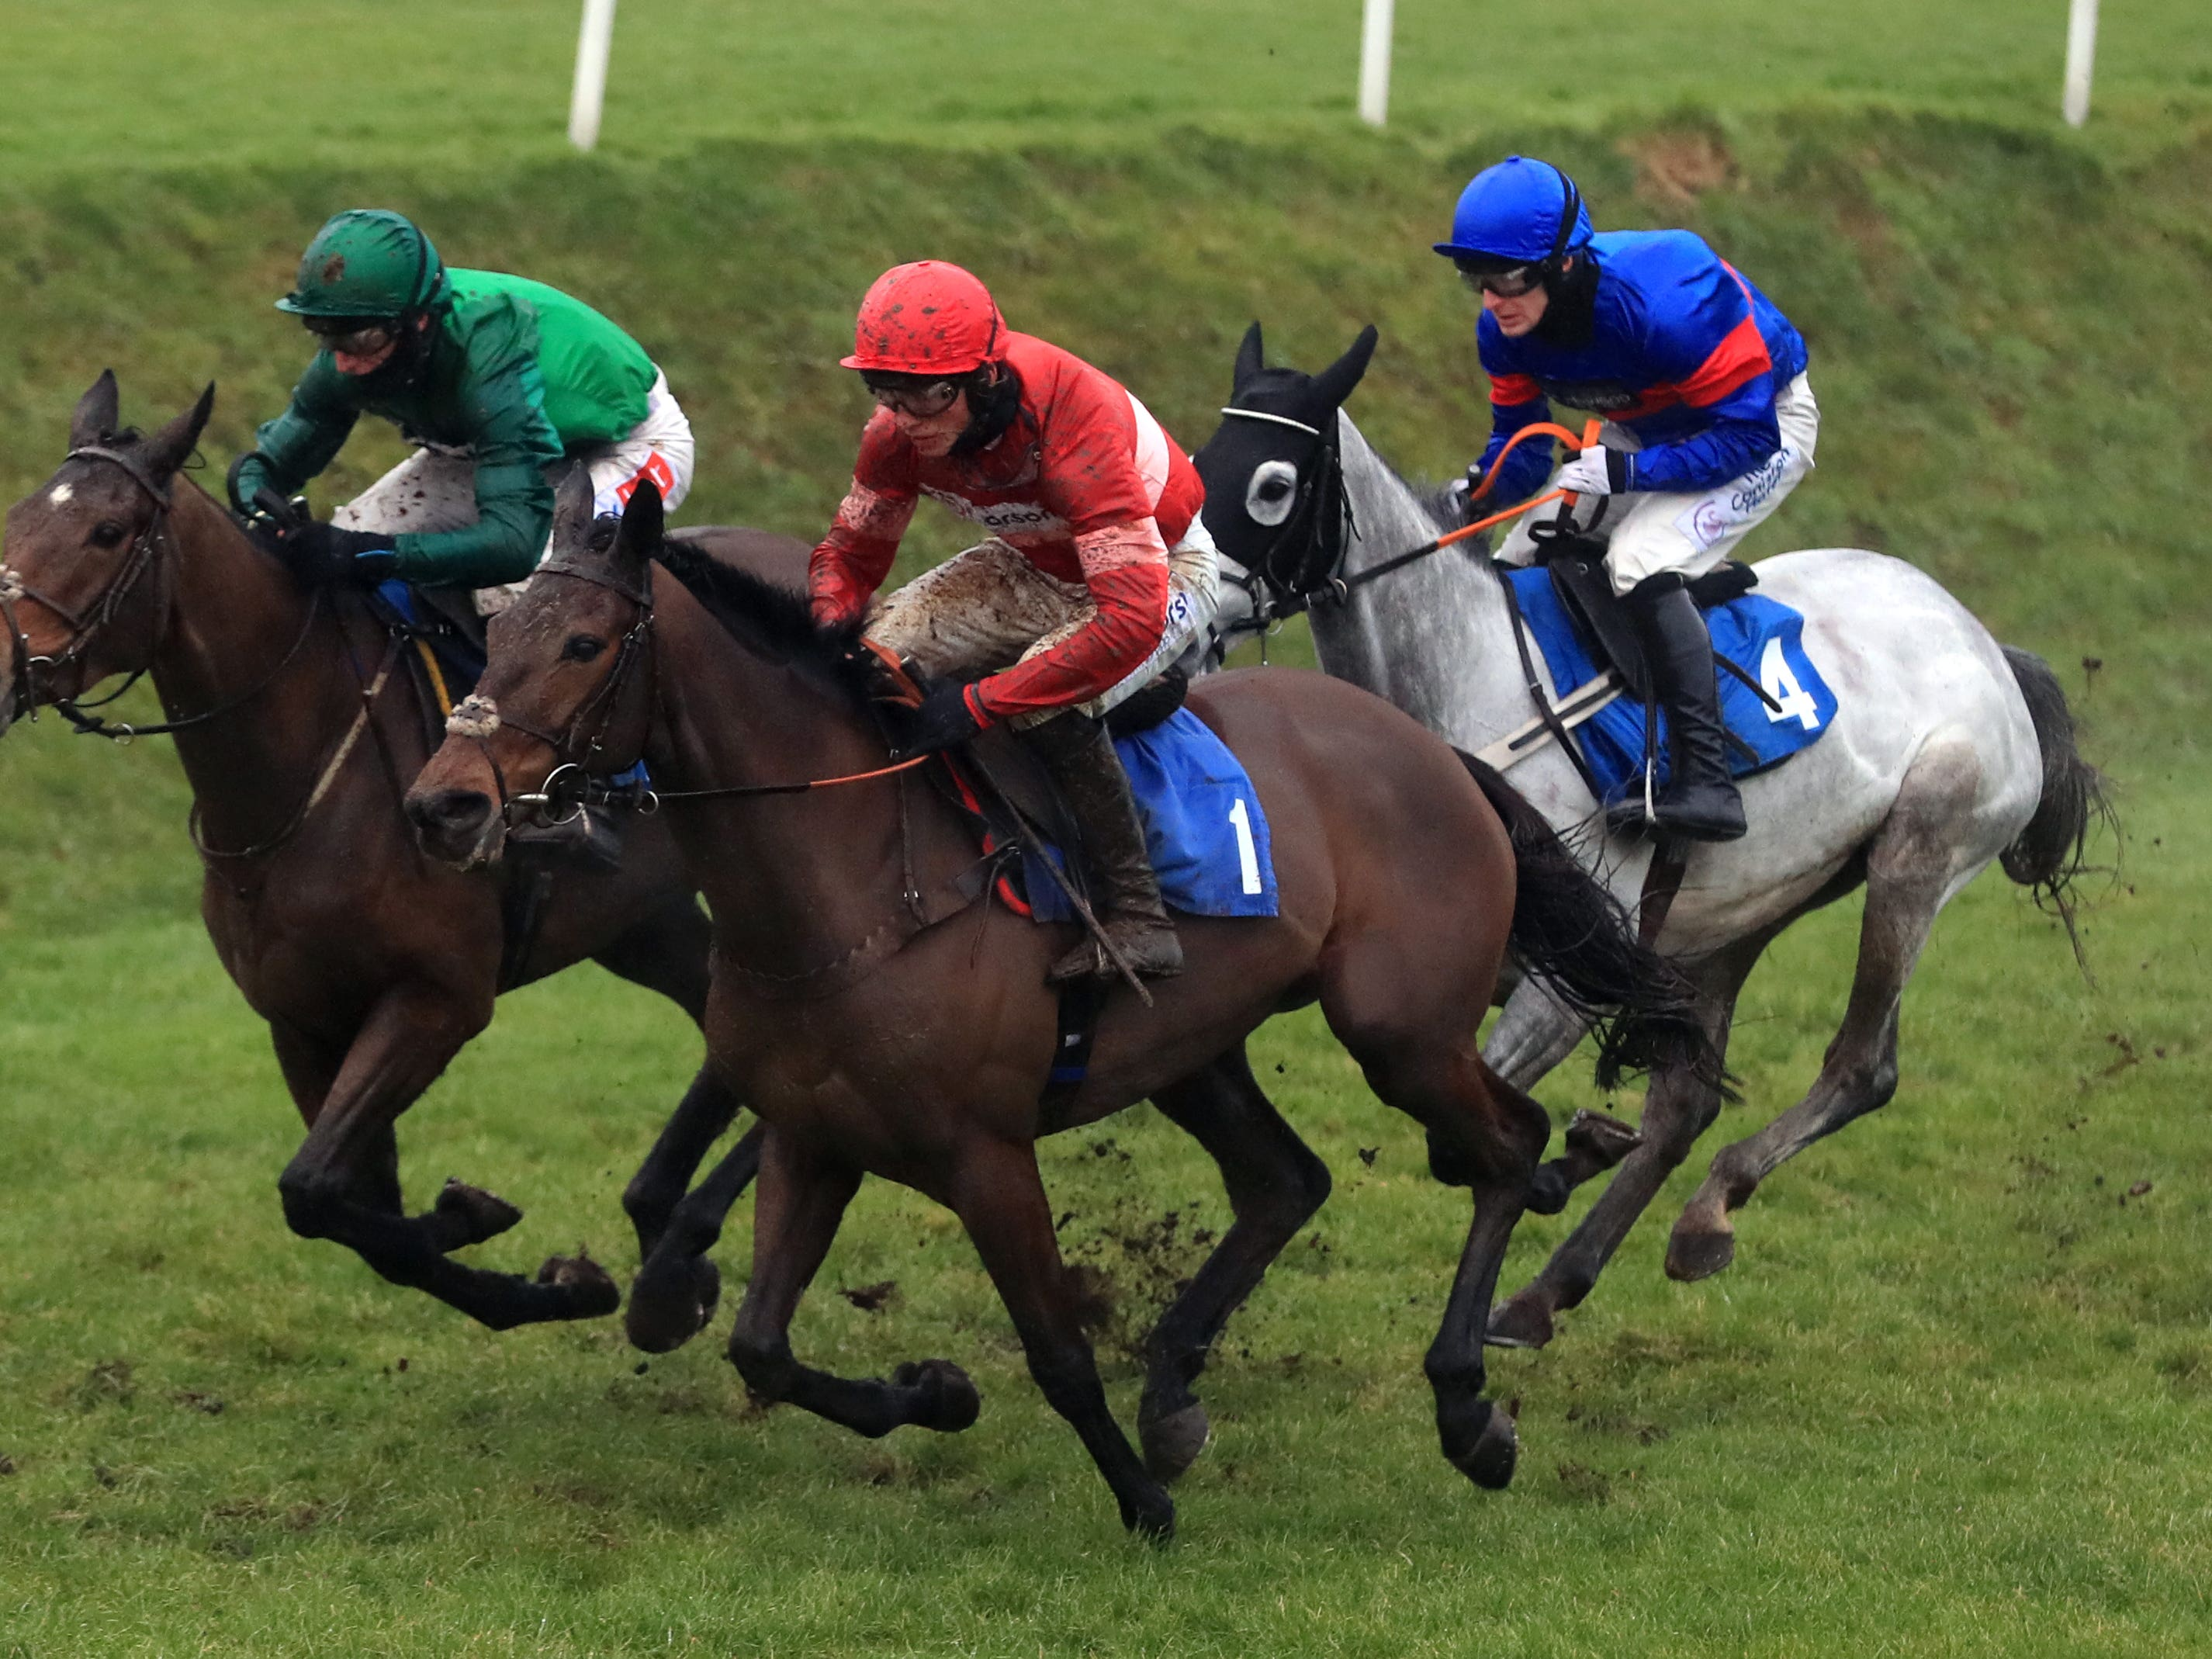 Zambella and Daryl Jacob (left, green) on their way to winning the Pertemps Network Mares' Chase at Leicester Racecourse (Mike Egerton/PA Images)